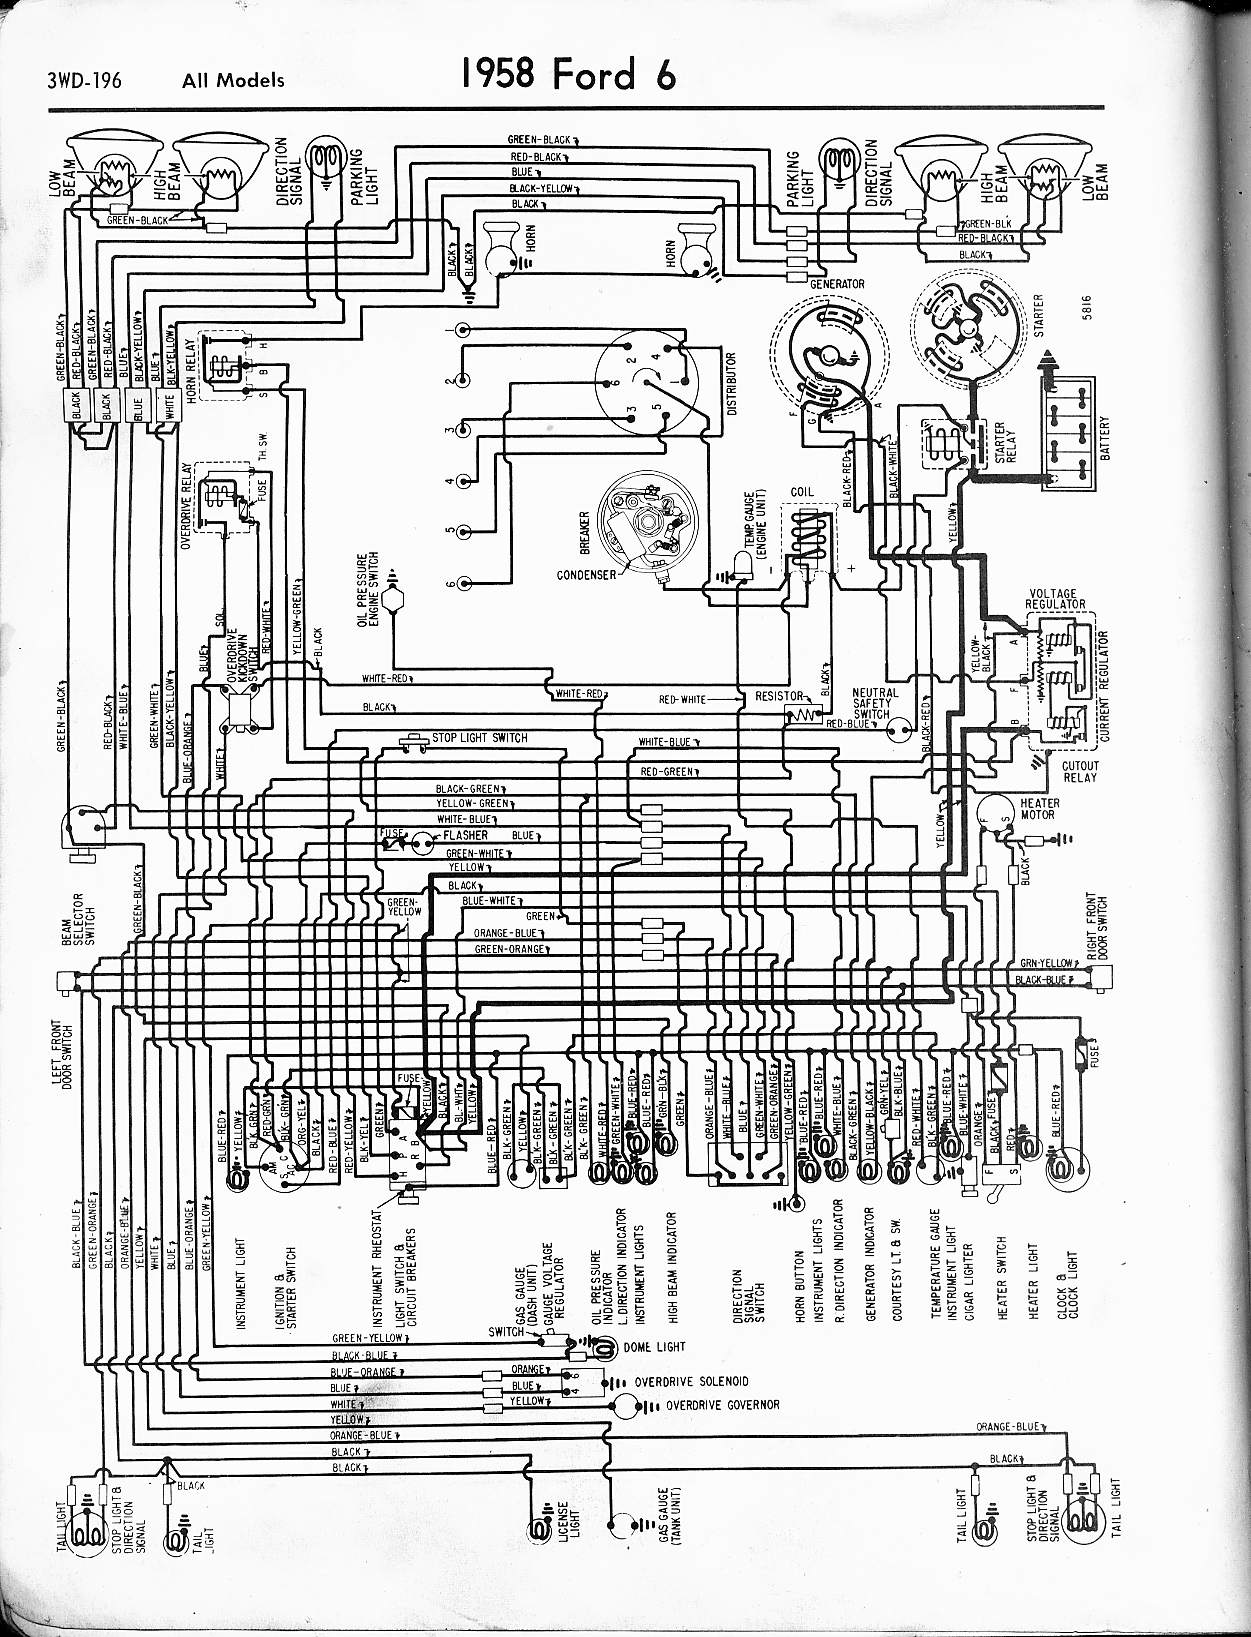 MWire5765 196 57 65 ford wiring diagrams ford truck wiring diagrams at reclaimingppi.co